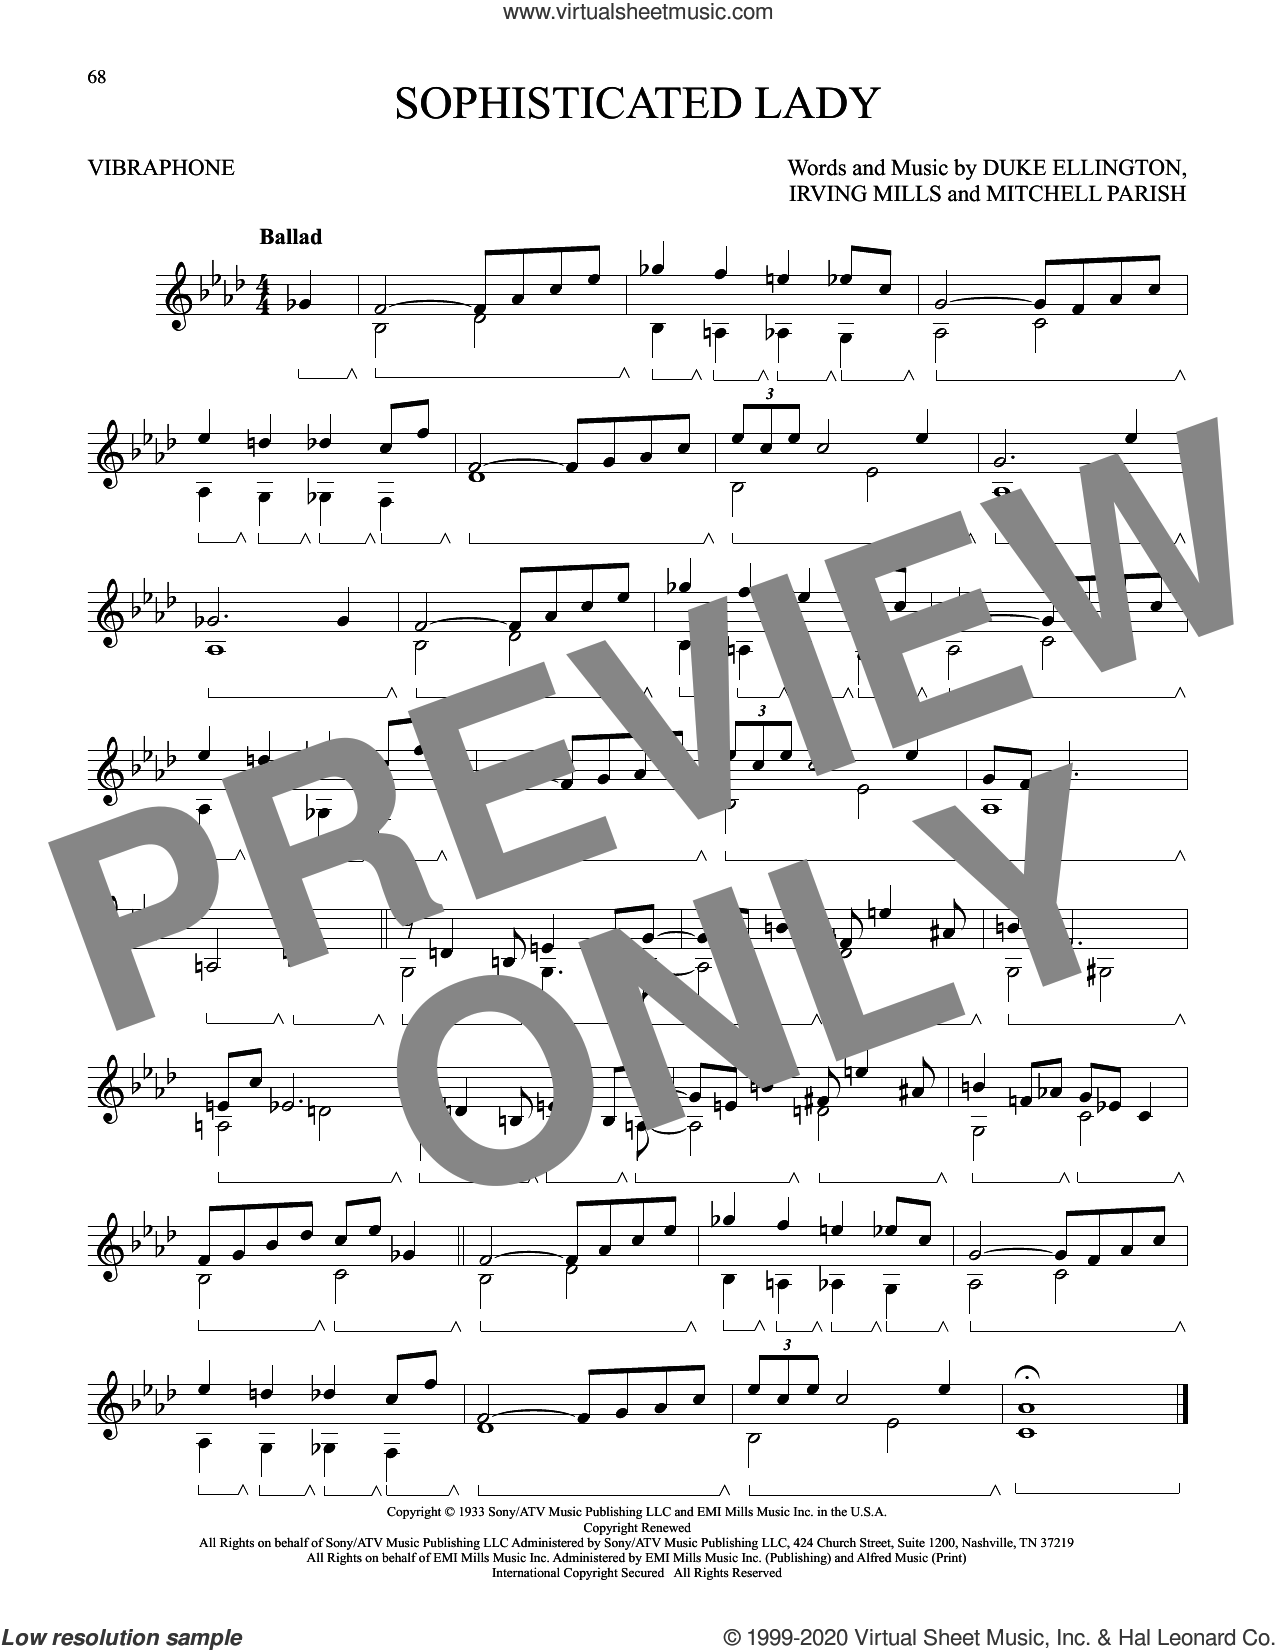 Sophisticated Lady sheet music for Vibraphone Solo by Duke Ellington, Irving Mills and Mitchell Parish, intermediate skill level